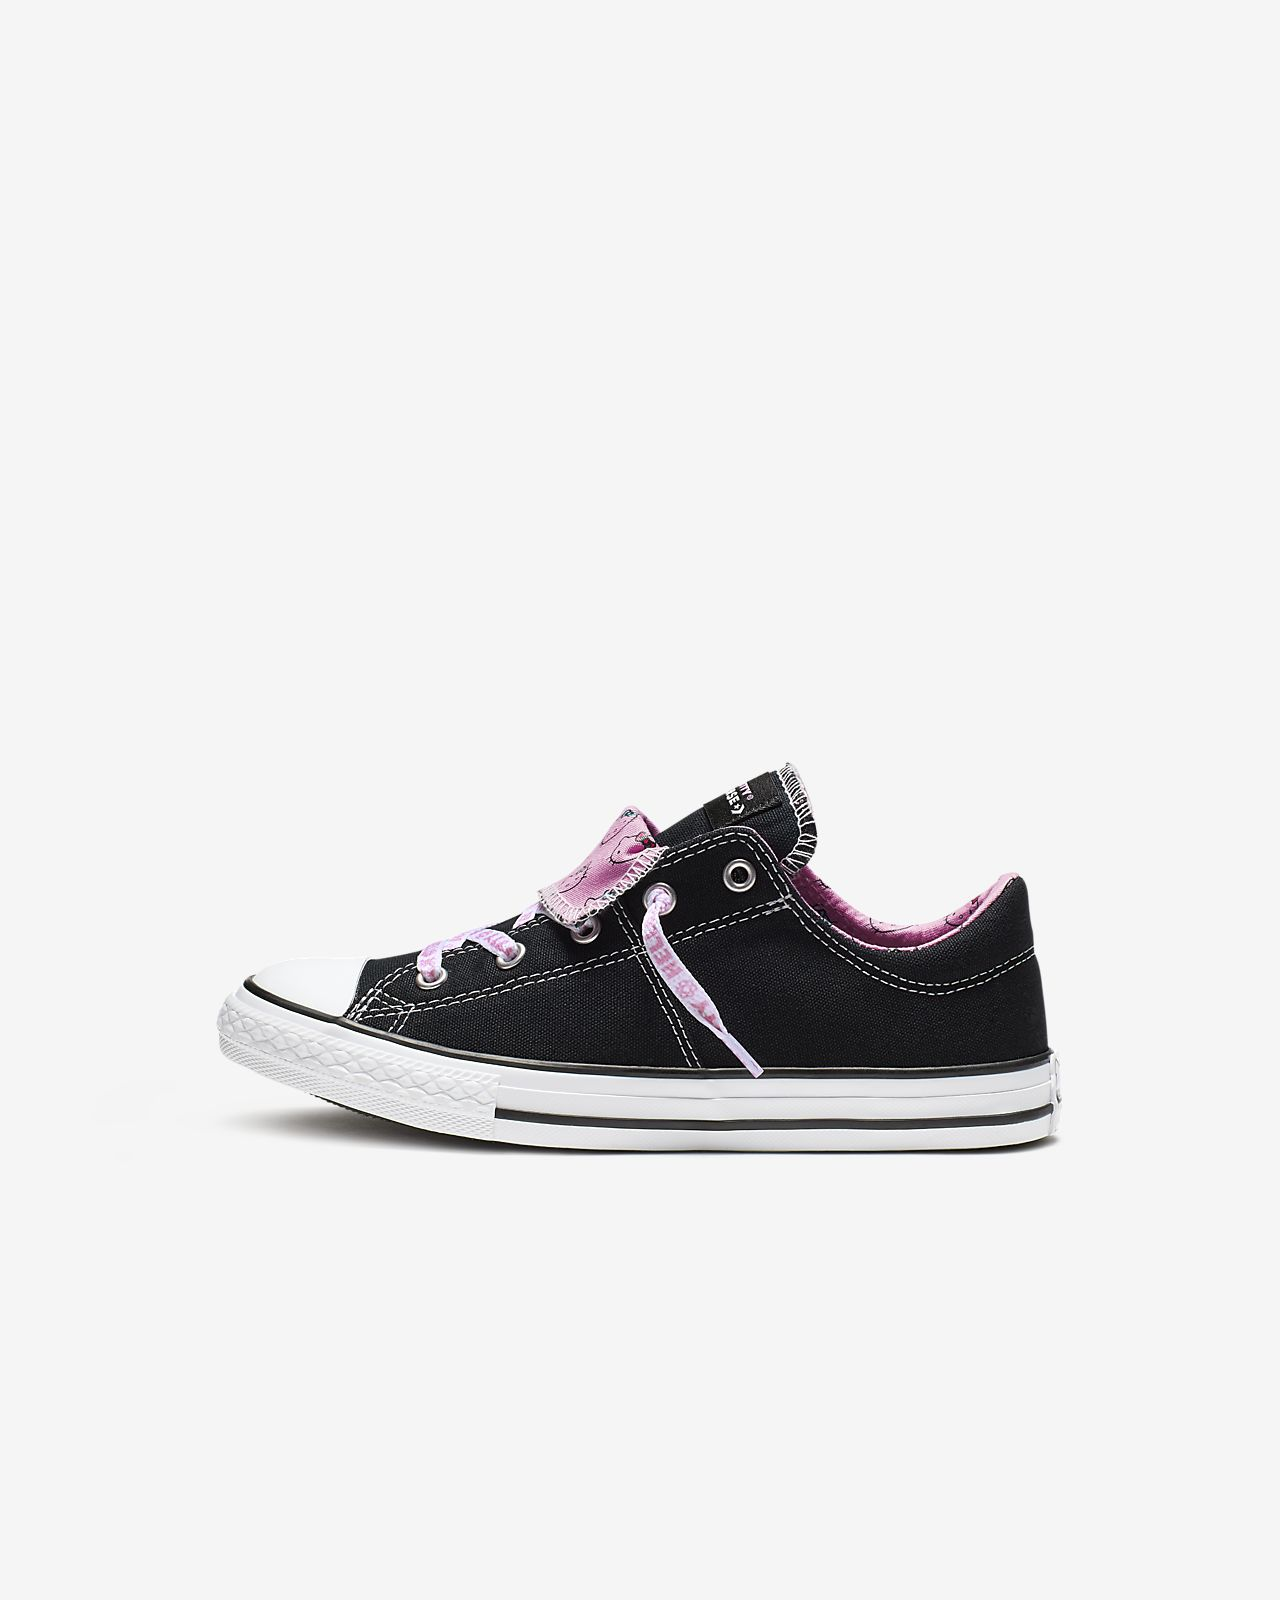 Converse x Hello Kitty Chuck Taylor All Star Maddie Low Top Little/Big Kids' Shoe